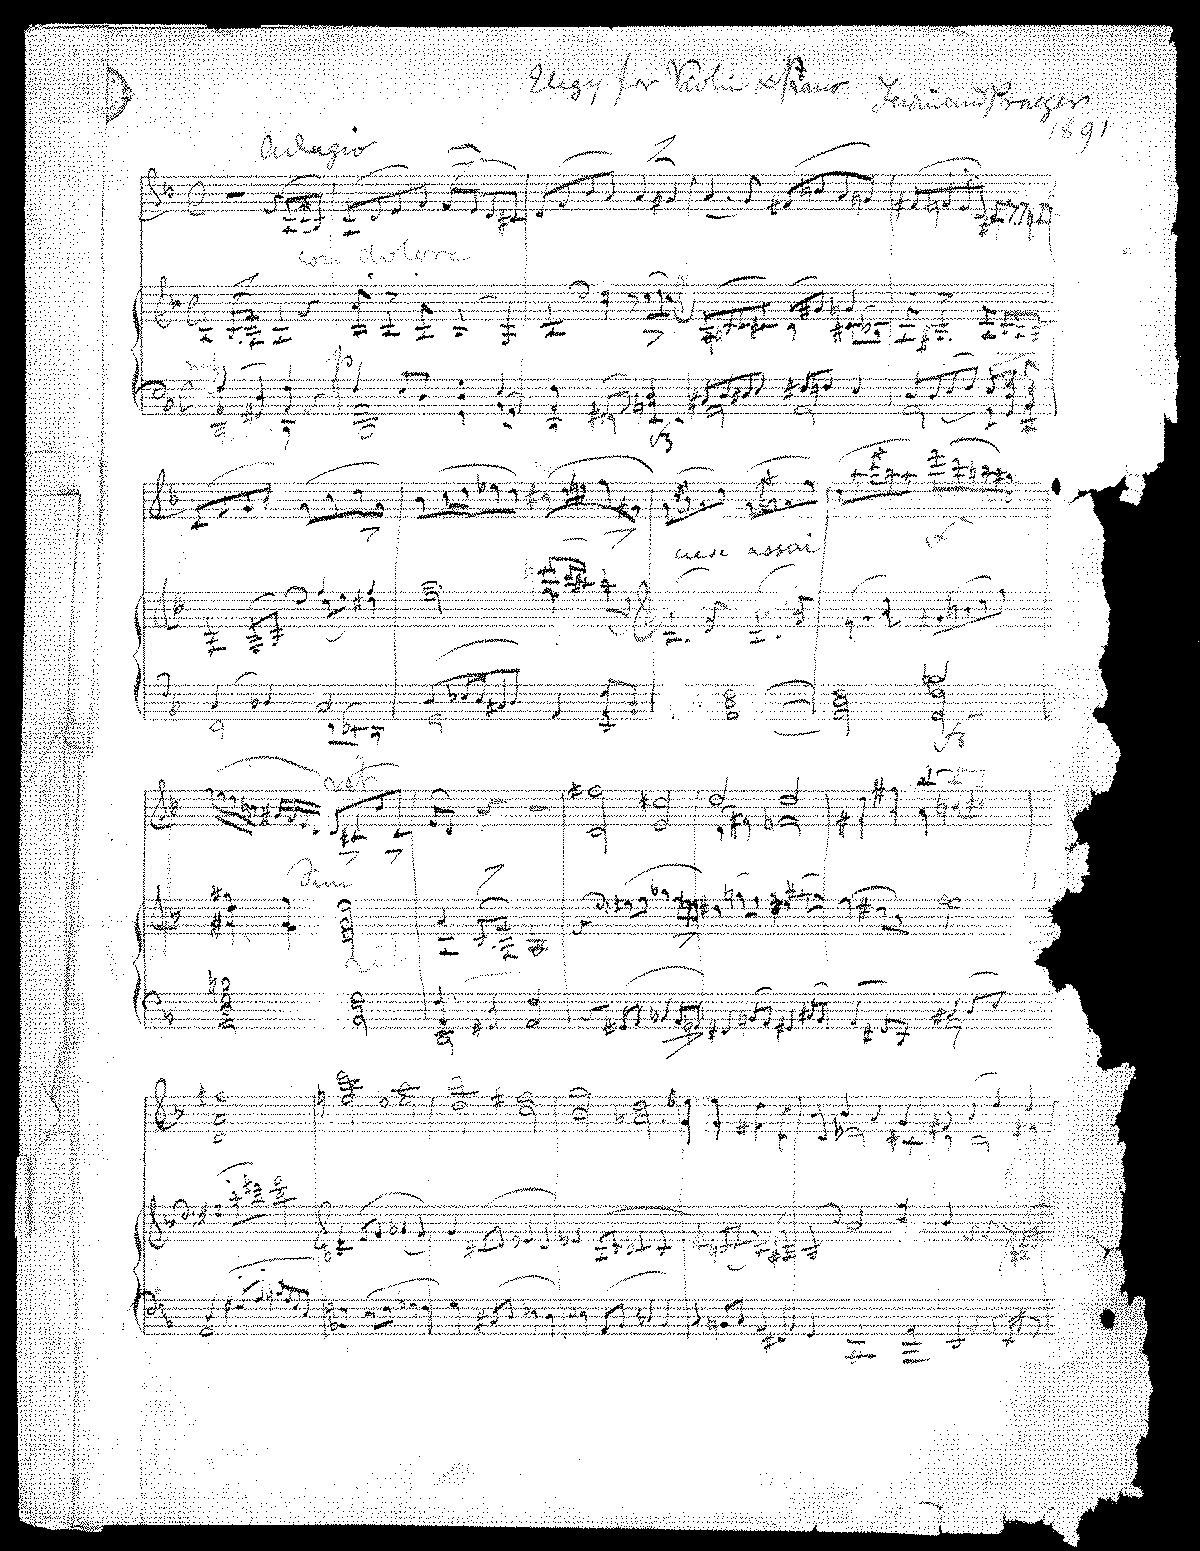 PMLP593228-FPraeger Elegy in D minor for Violin and Piano.pdf